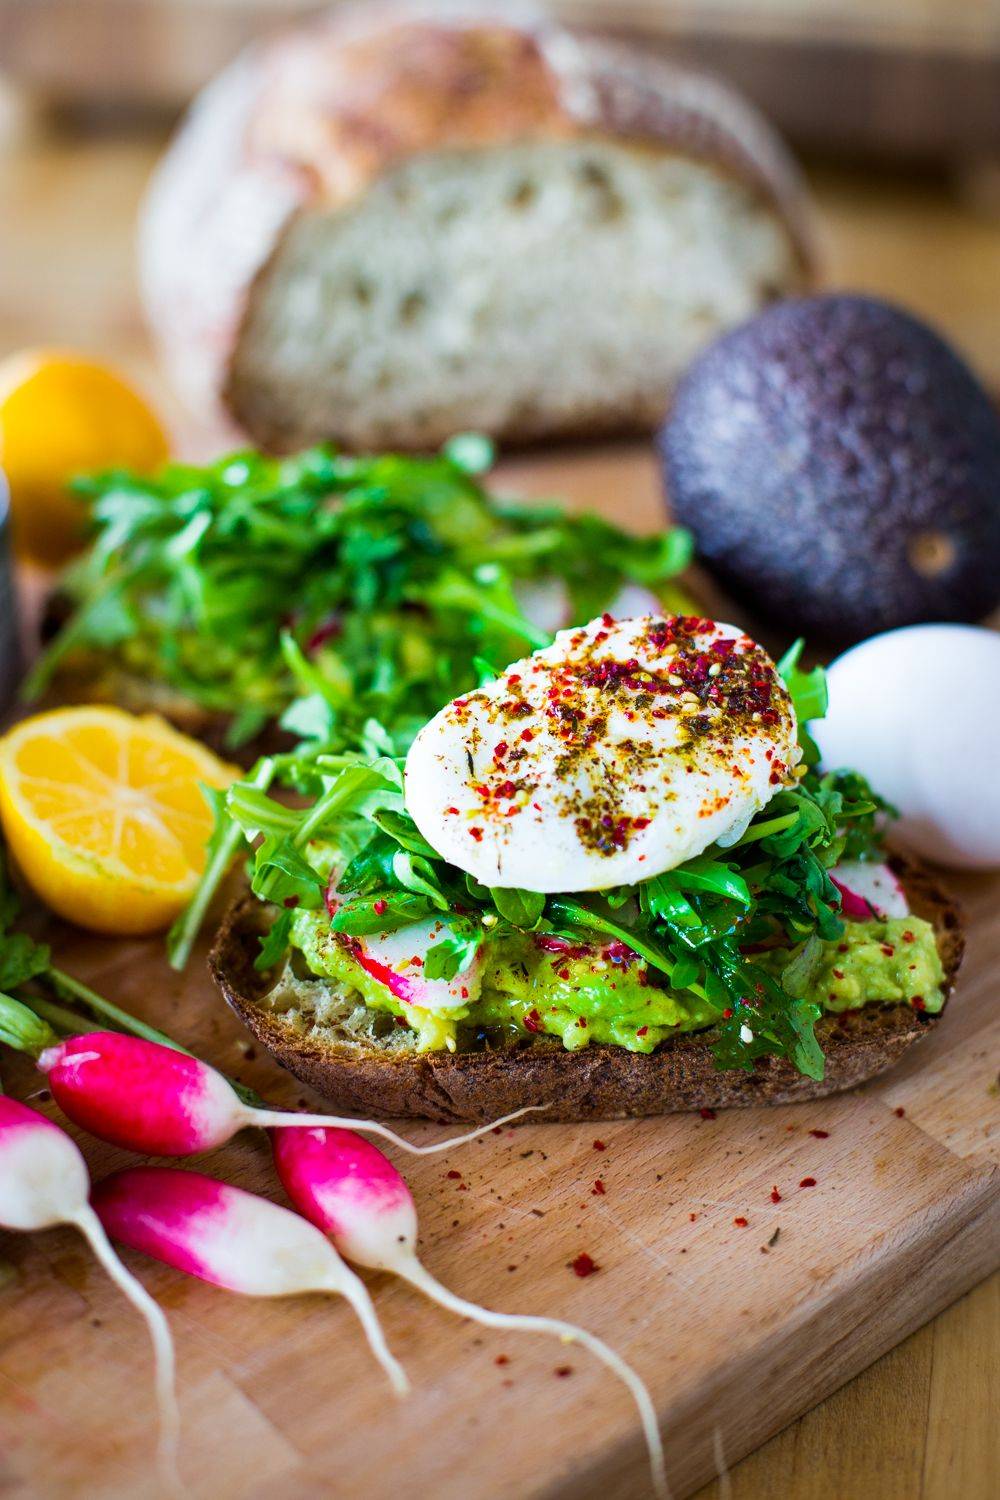 A simple tasty recipe for Avocado Toast with Poached Eggs, arugula, zaatar, lemon and radishes. Quick and delicious ...and healthy!